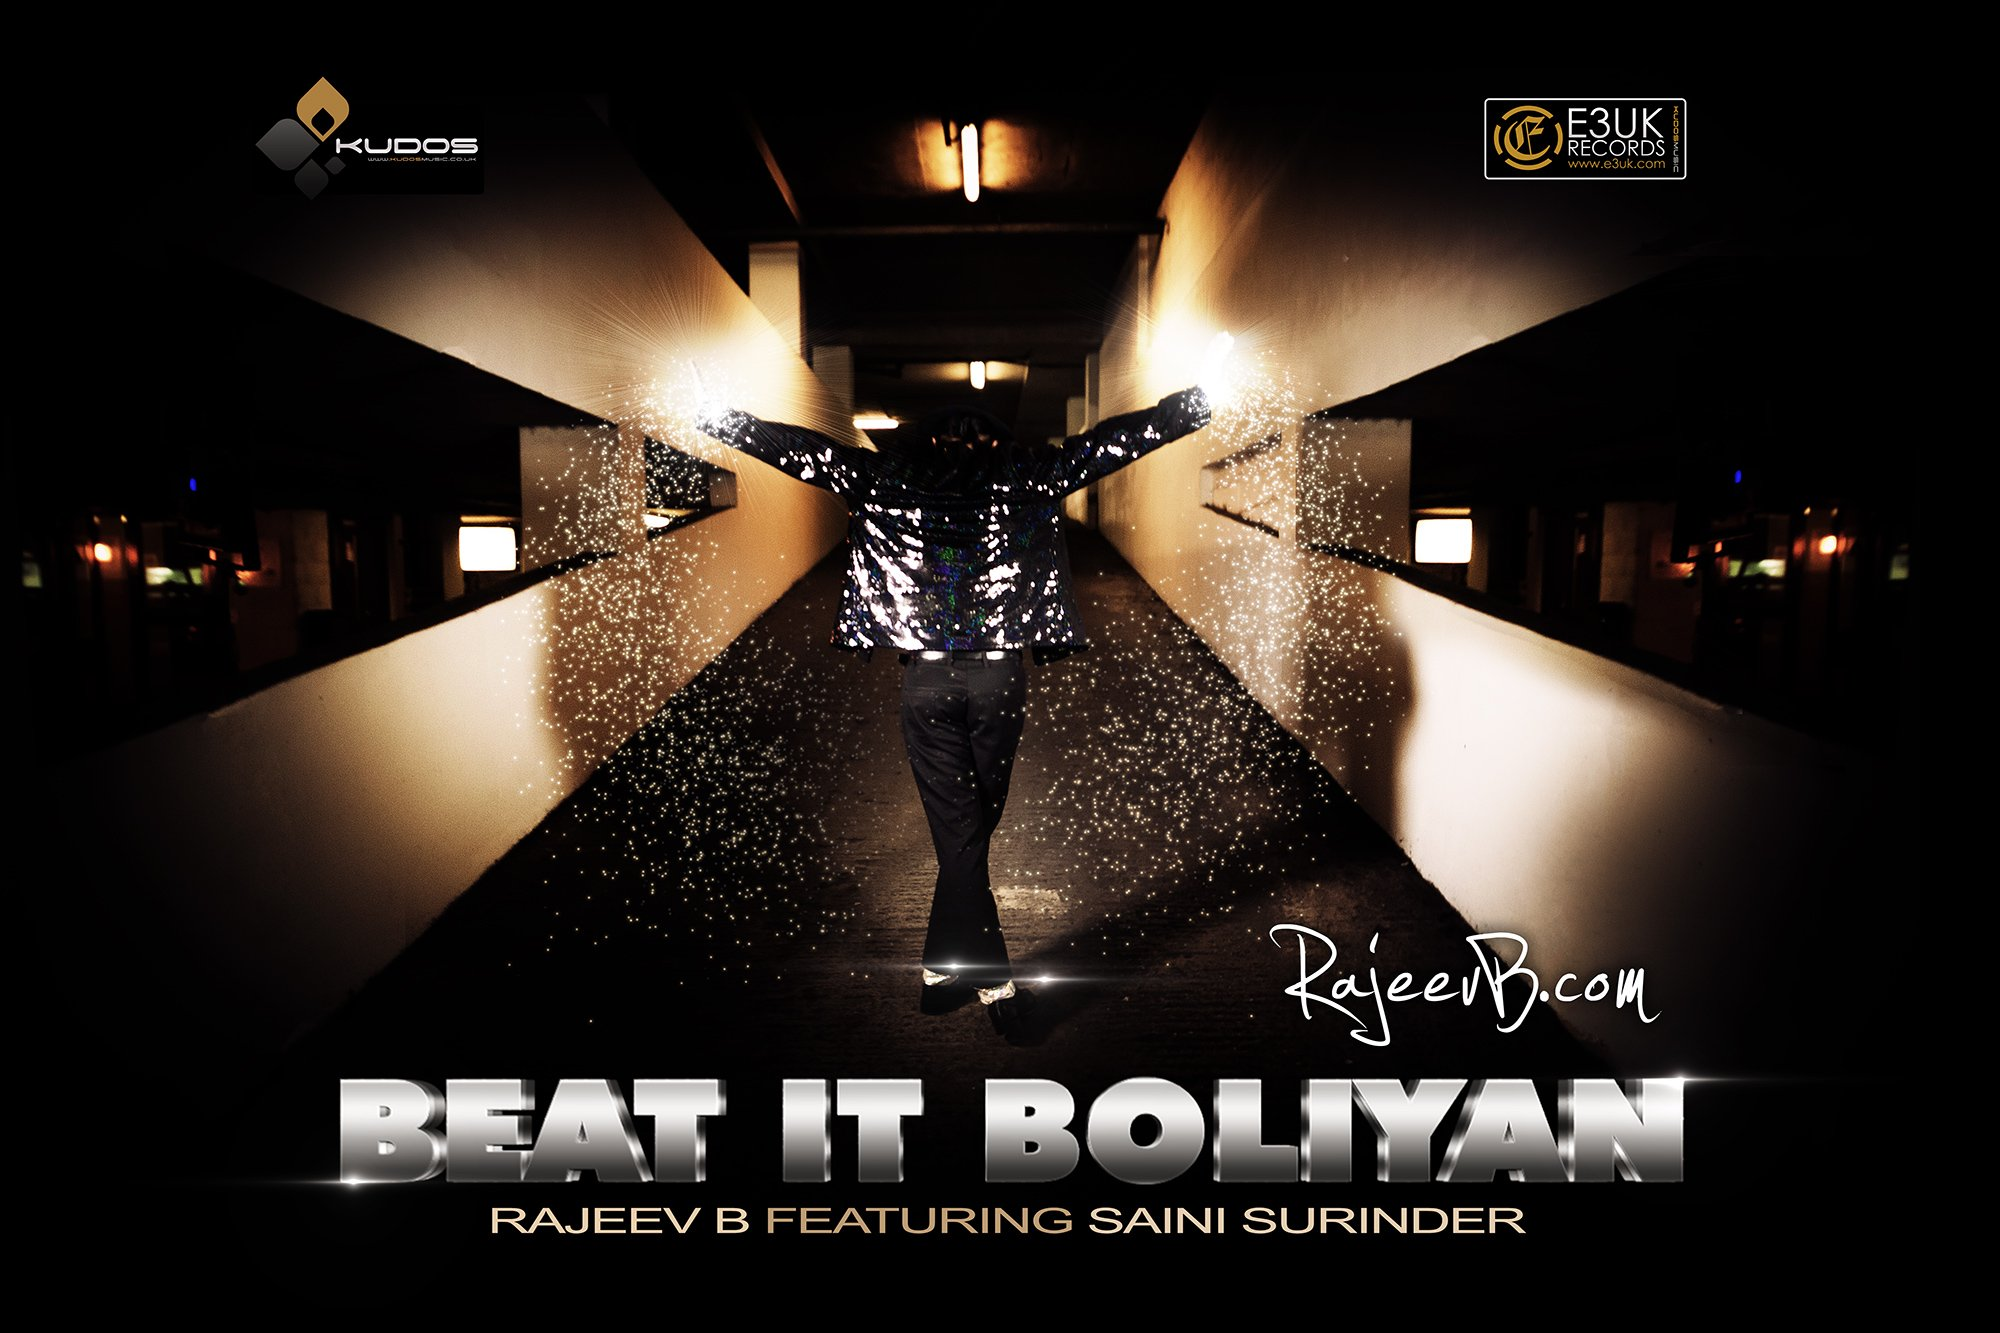 Beat It Bhangra Stylee With Rajeev B! - The official Bhangra tribute to Michael Jackson